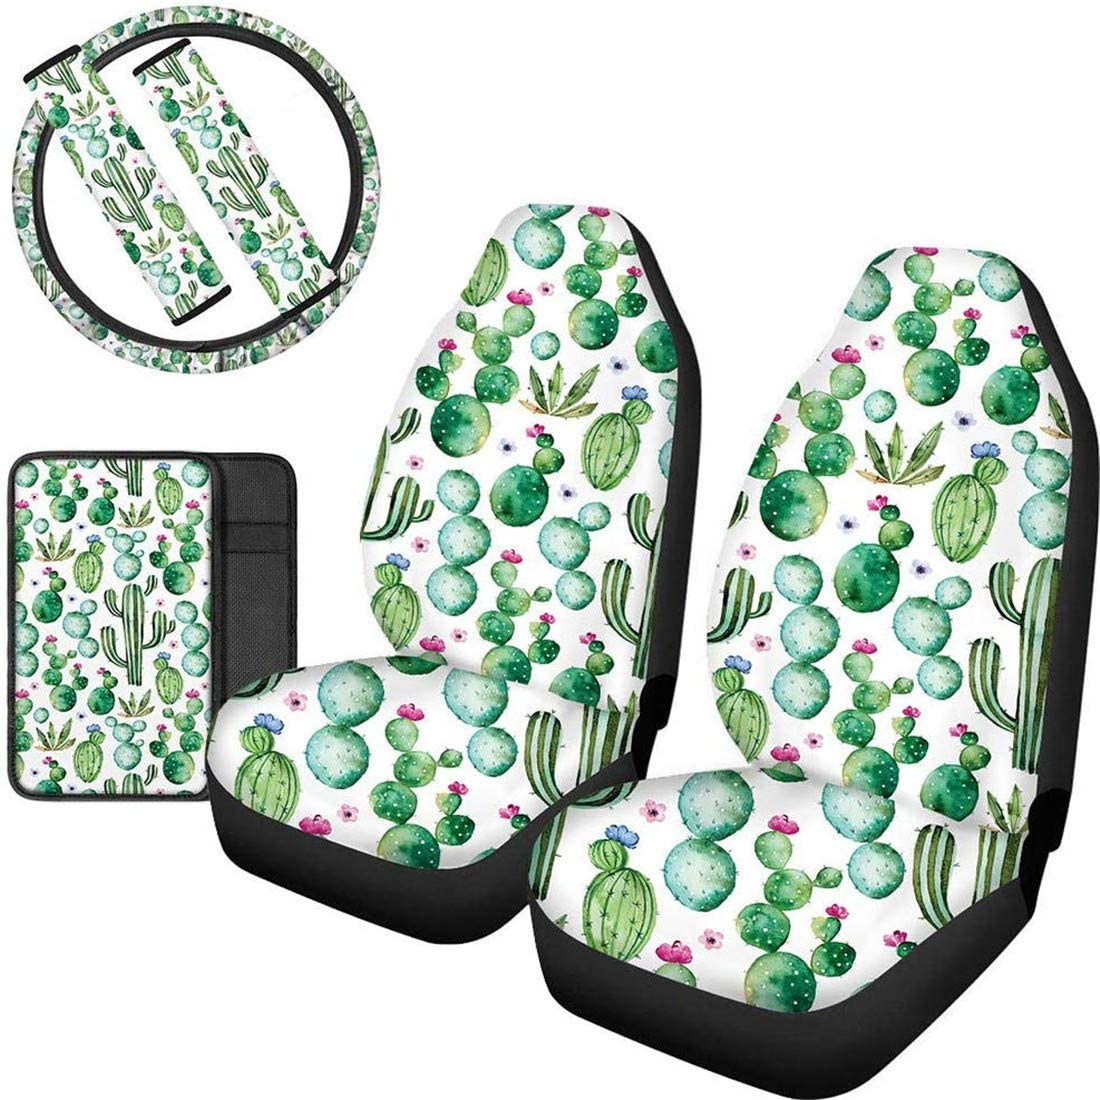 Upetstory Car Accessories Protector 6 Pieces with Front Car Seat Cover Steering Wheel Cover Anti-Slip Center Console Armrest Cover Safely Protector Seat Belt Pads Cactus